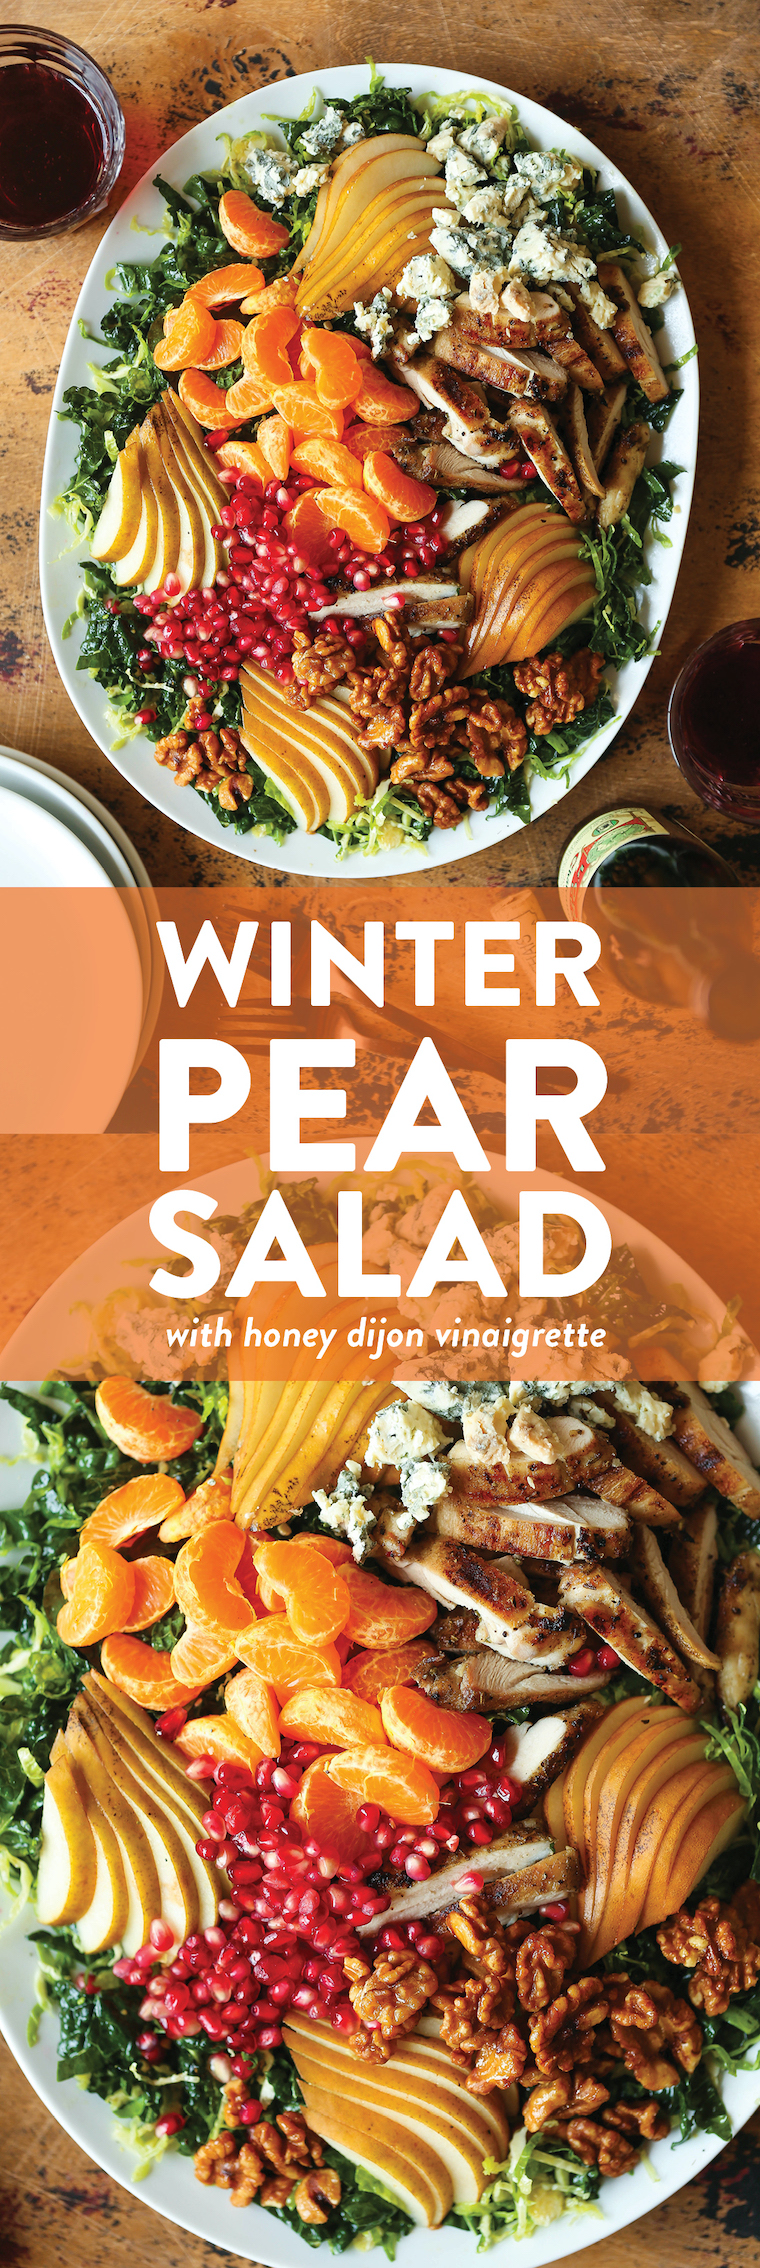 Winter Pear Salad Recipe Damn Delicious